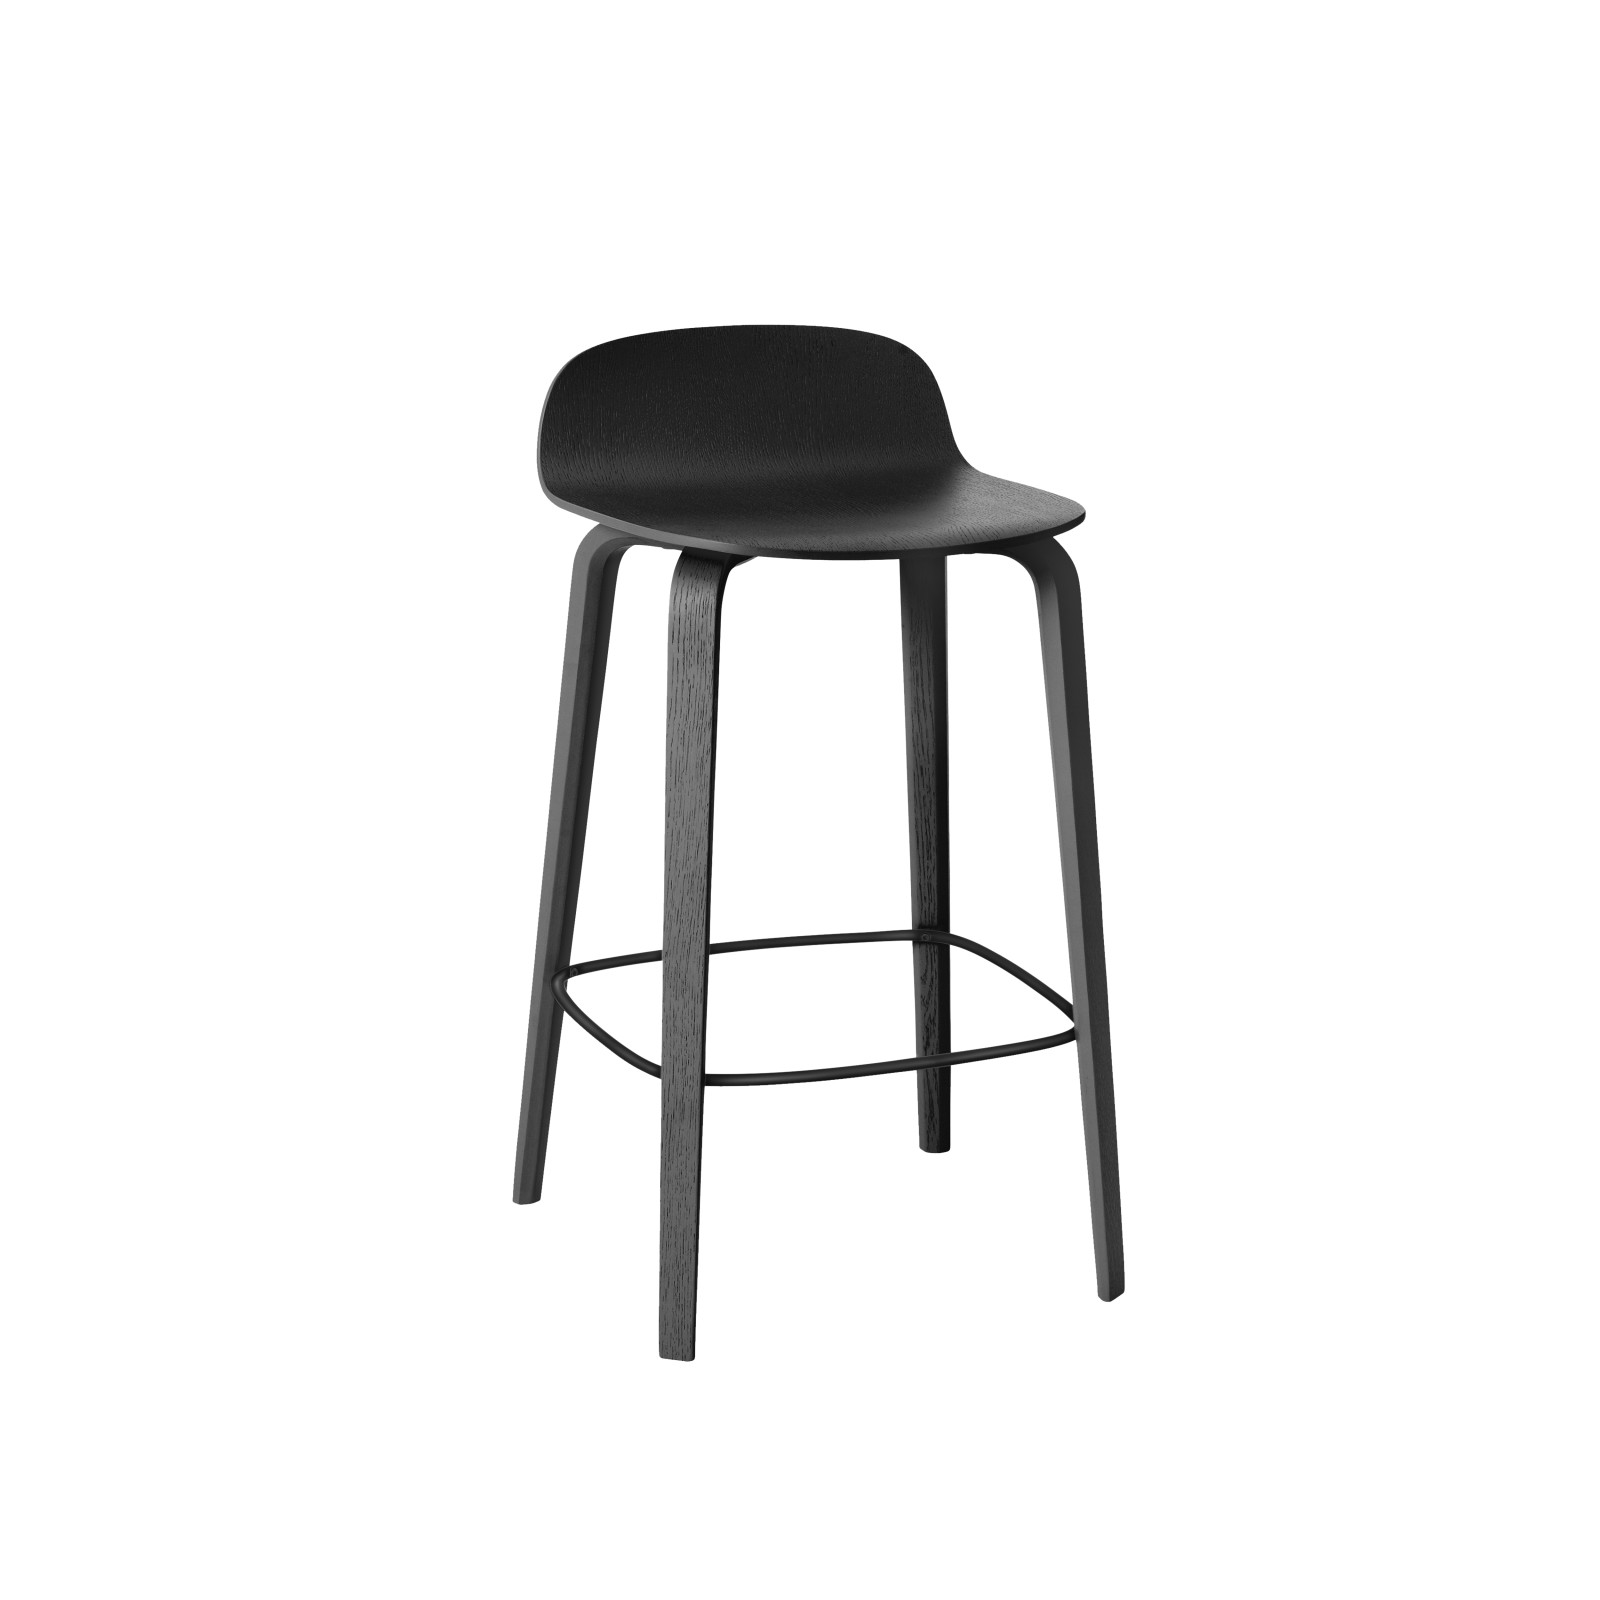 Visu Bar Stool Black, 65